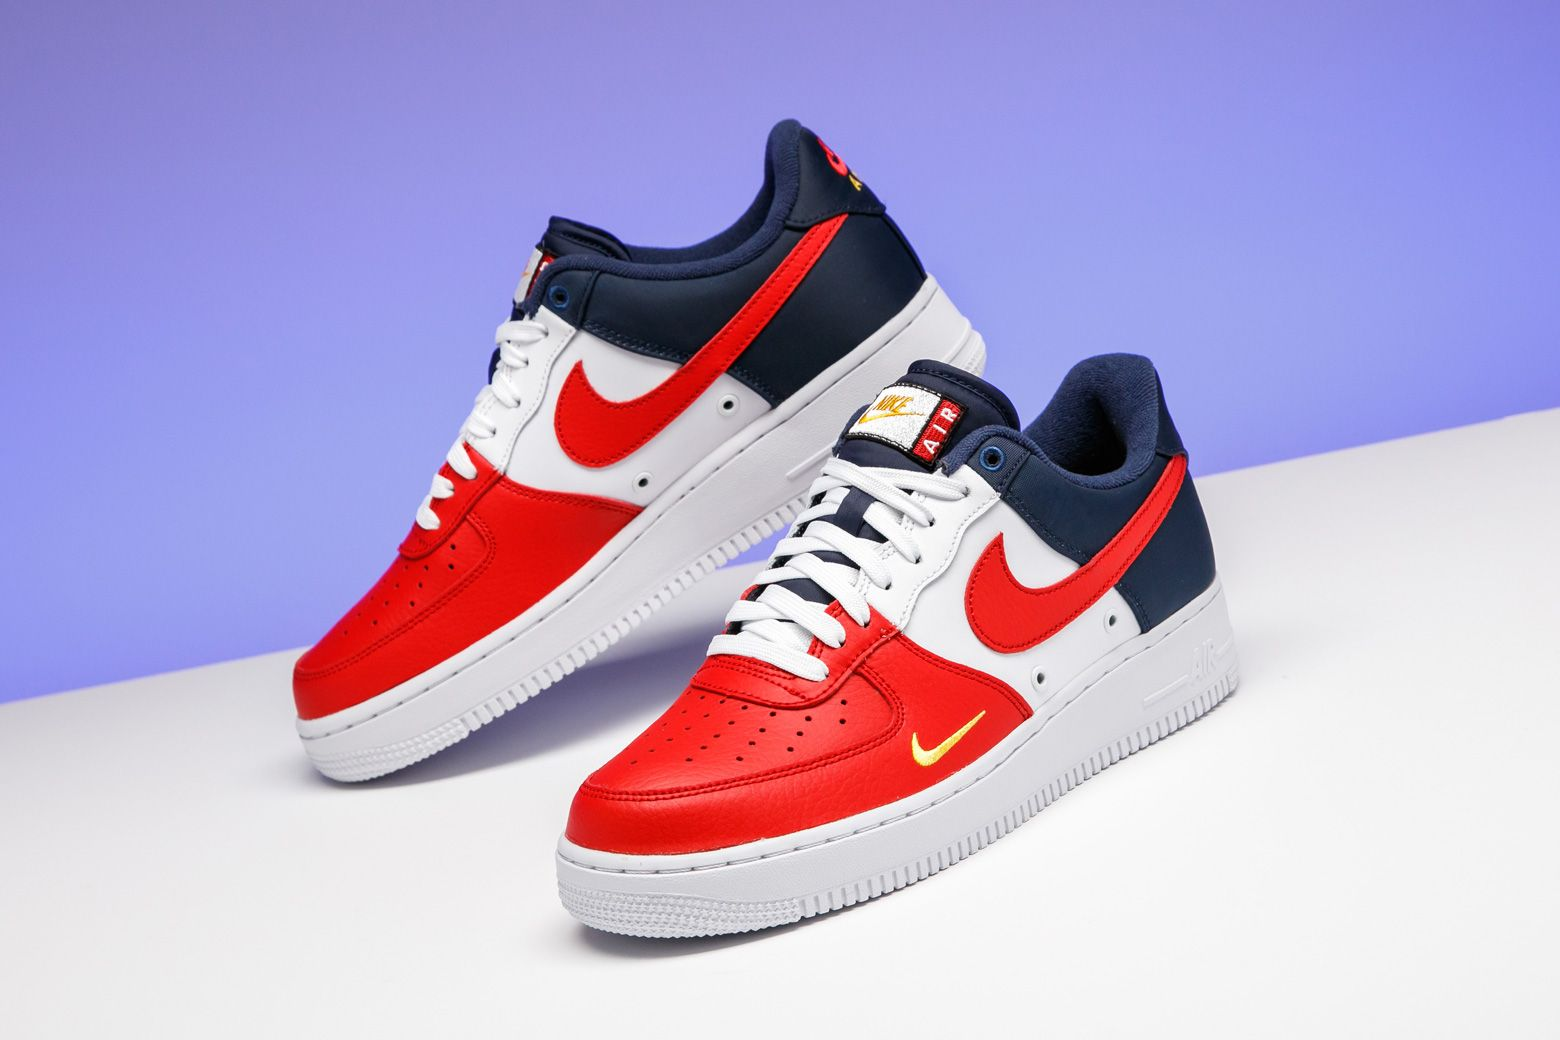 136a1b5be12 Nike dressed the Air Force 1 Low in a patriotic colorway with insane color  blocking and an offsetting mini-Swoosh.